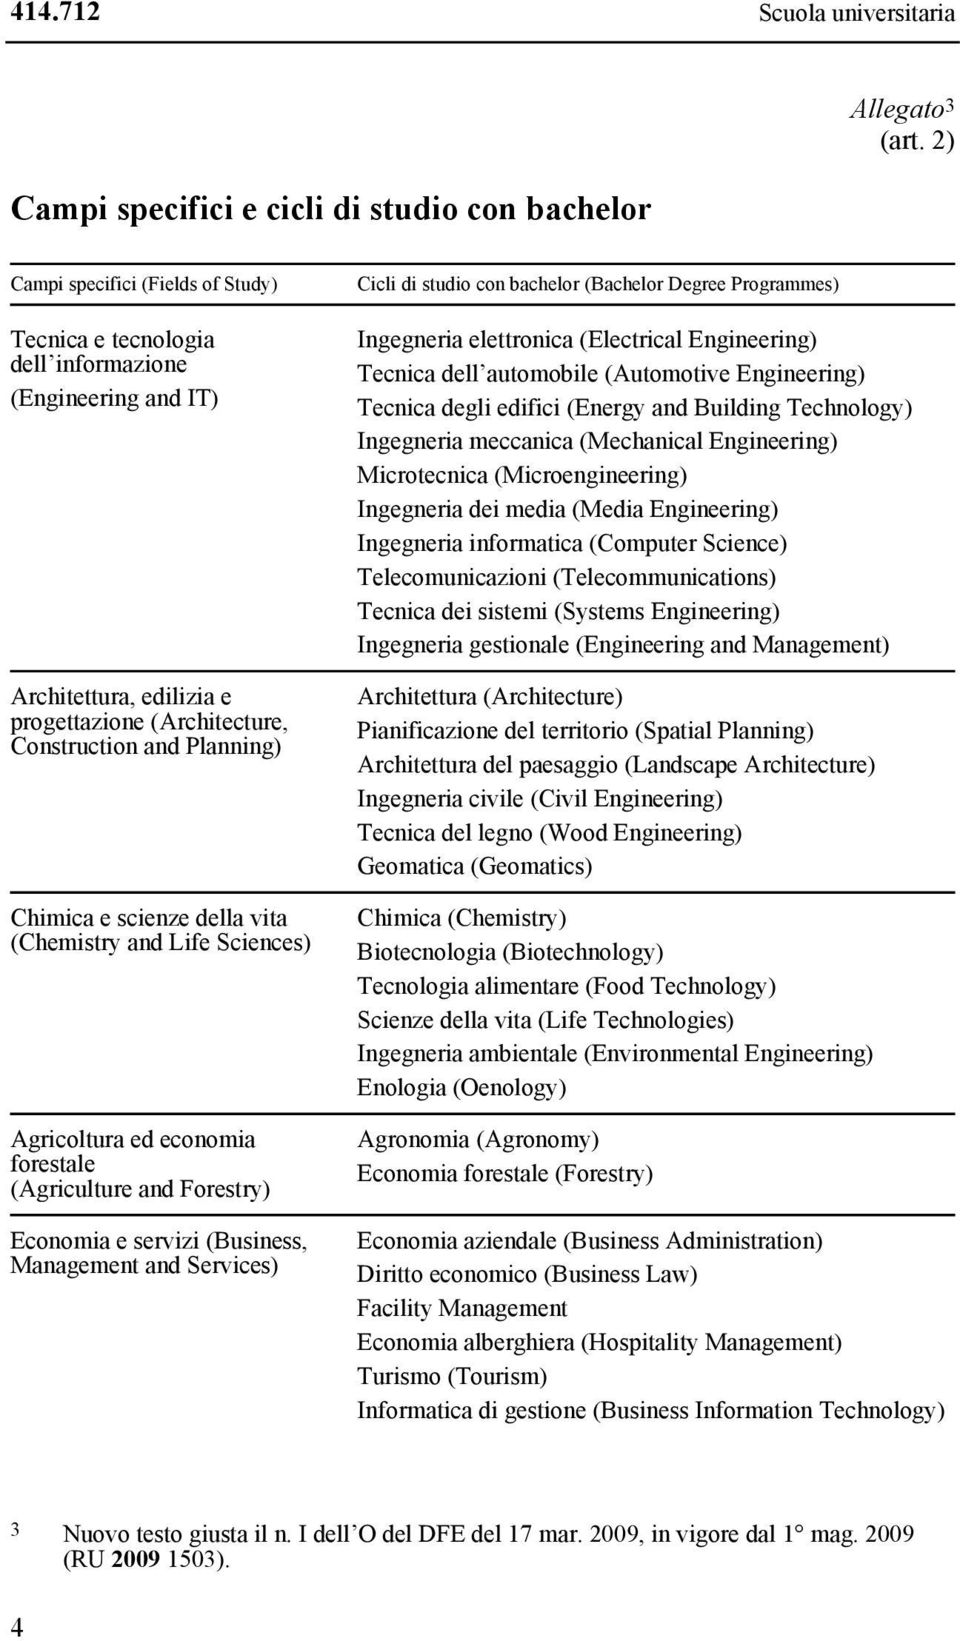 Construction and Planning) Chimica e scienze della vita (Chemistry and Life Sciences) Agricoltura ed economia forestale (Agriculture and Forestry) Economia e servizi (Business, Management and